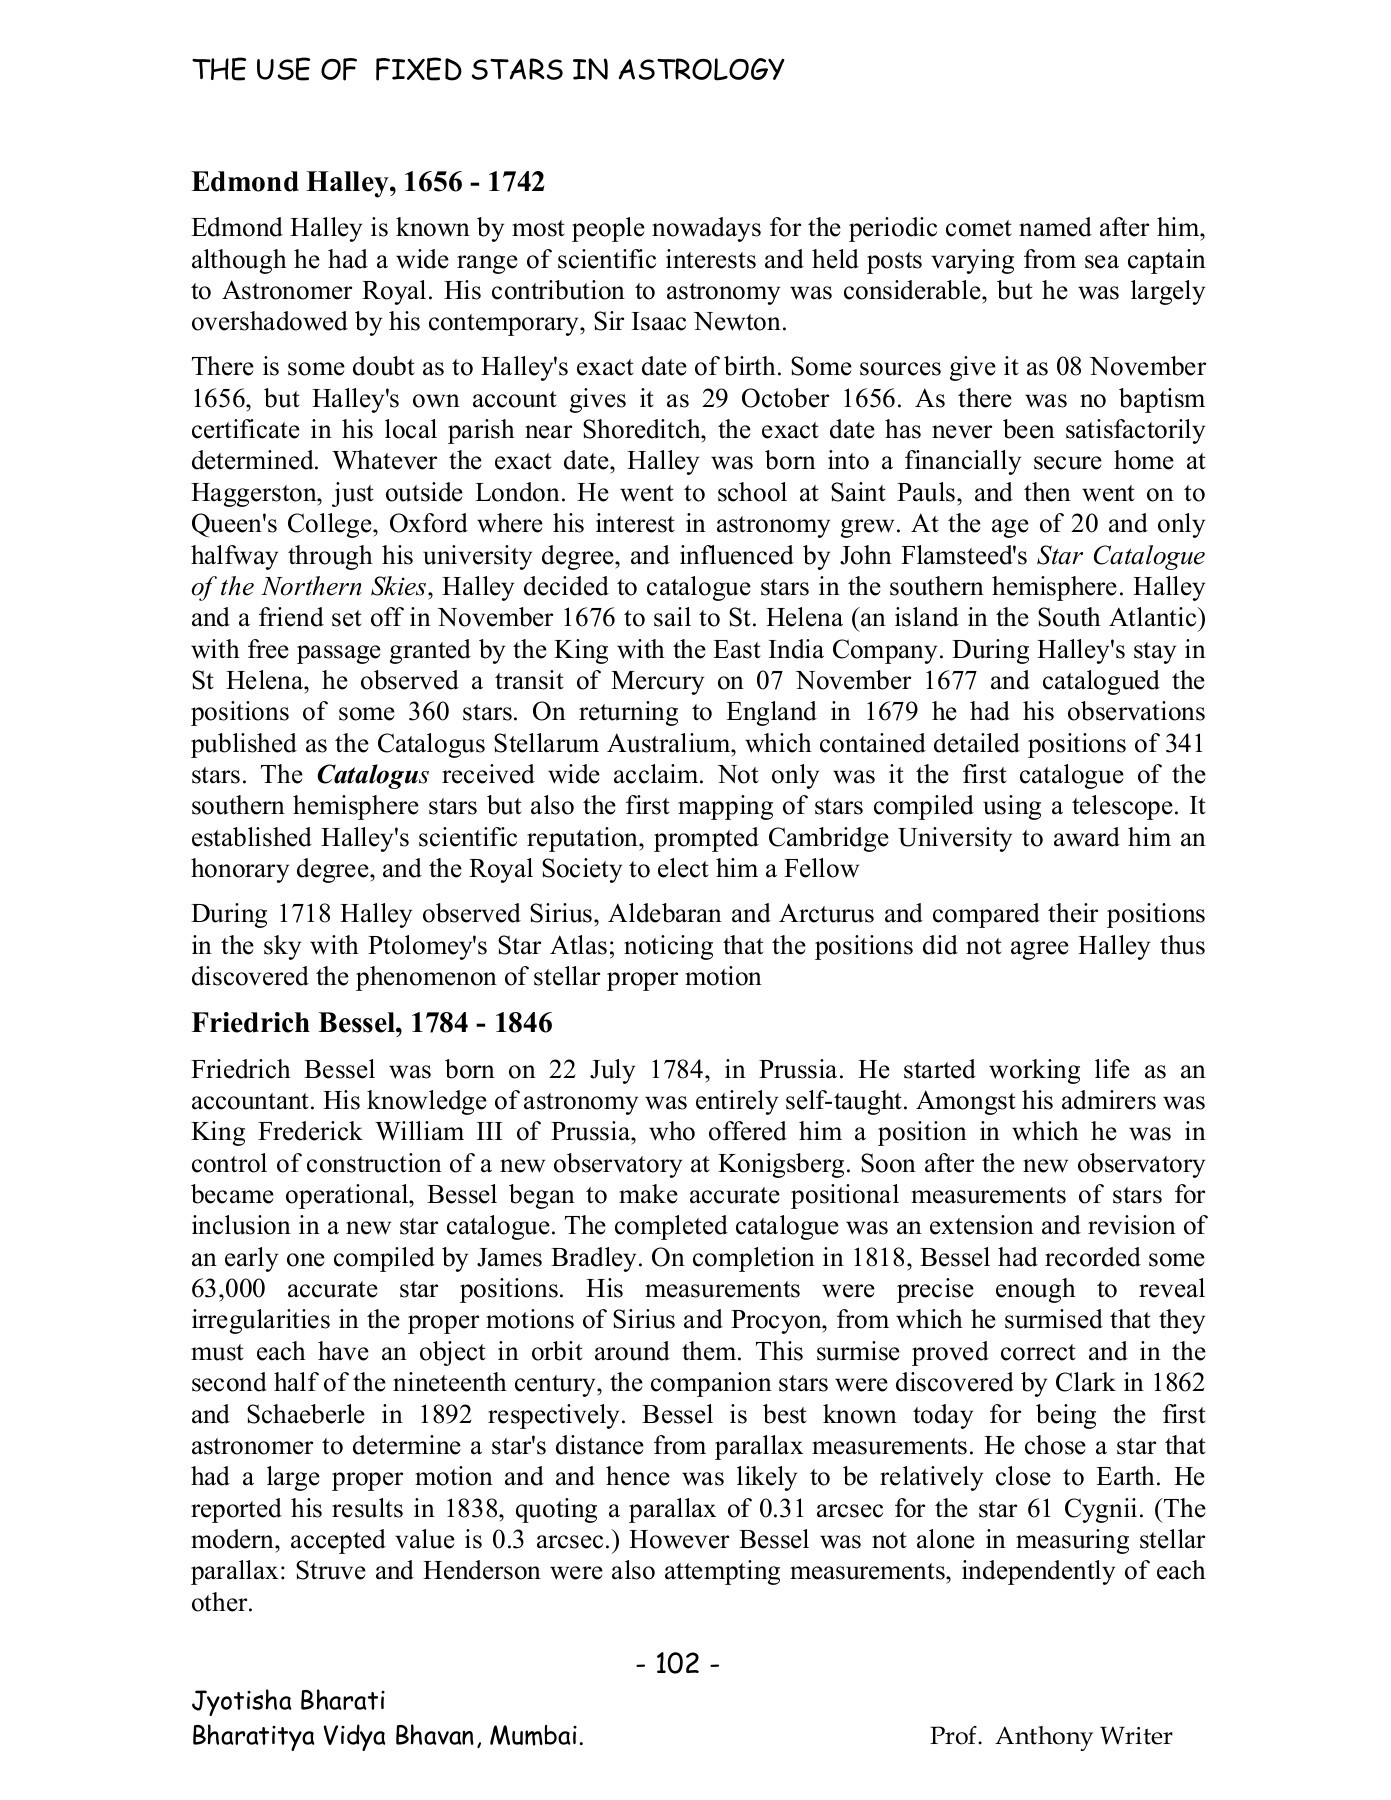 hight resolution of the use of fixed stars in astrology pages 101 150 text version fliphtml5